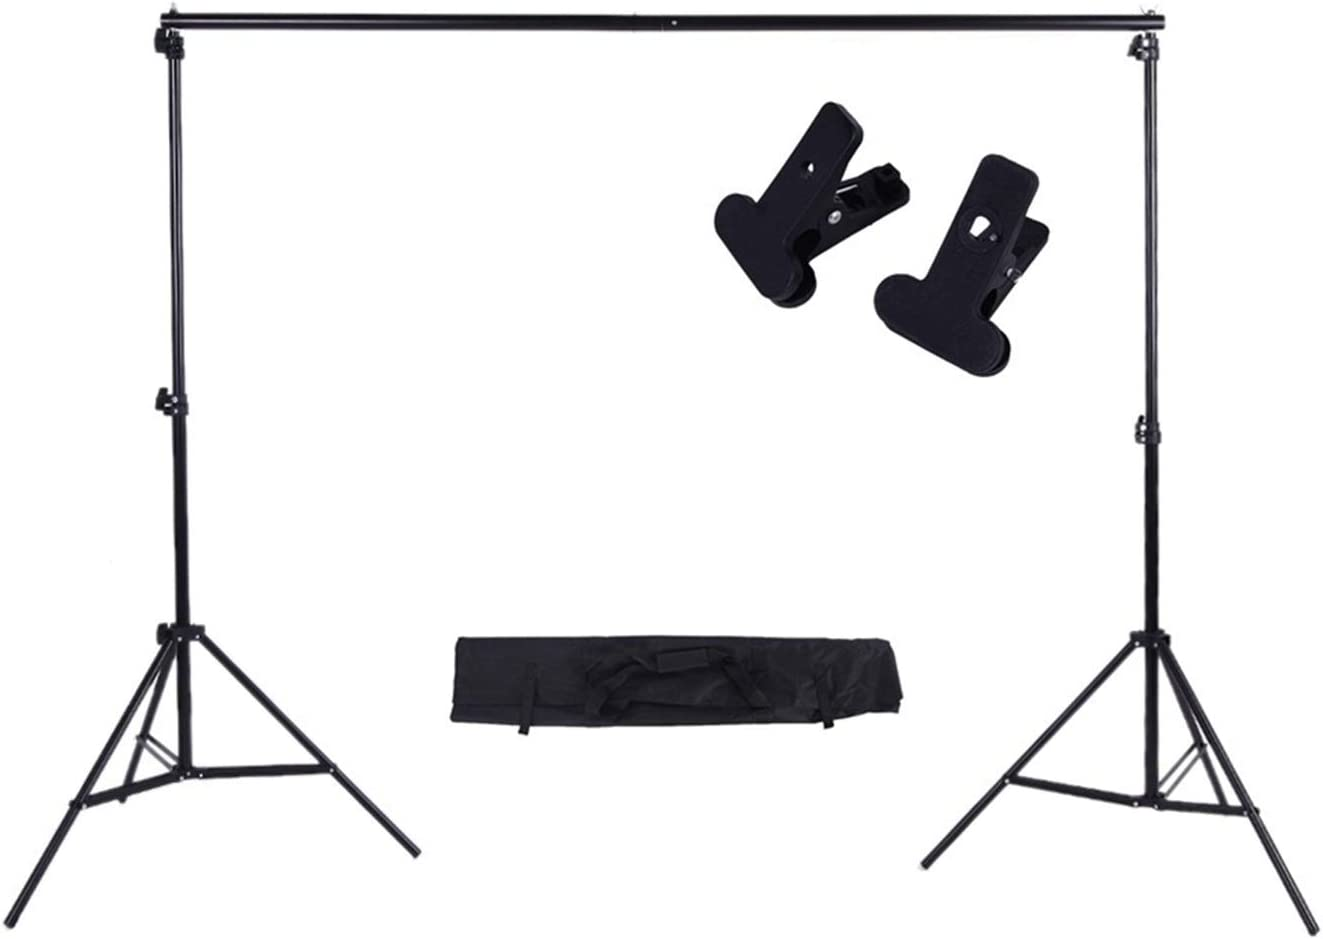 Photography 23m 6.69.8ft Max 89% OFF Photo Adjustable Background Ranking TOP2 Studio Kit